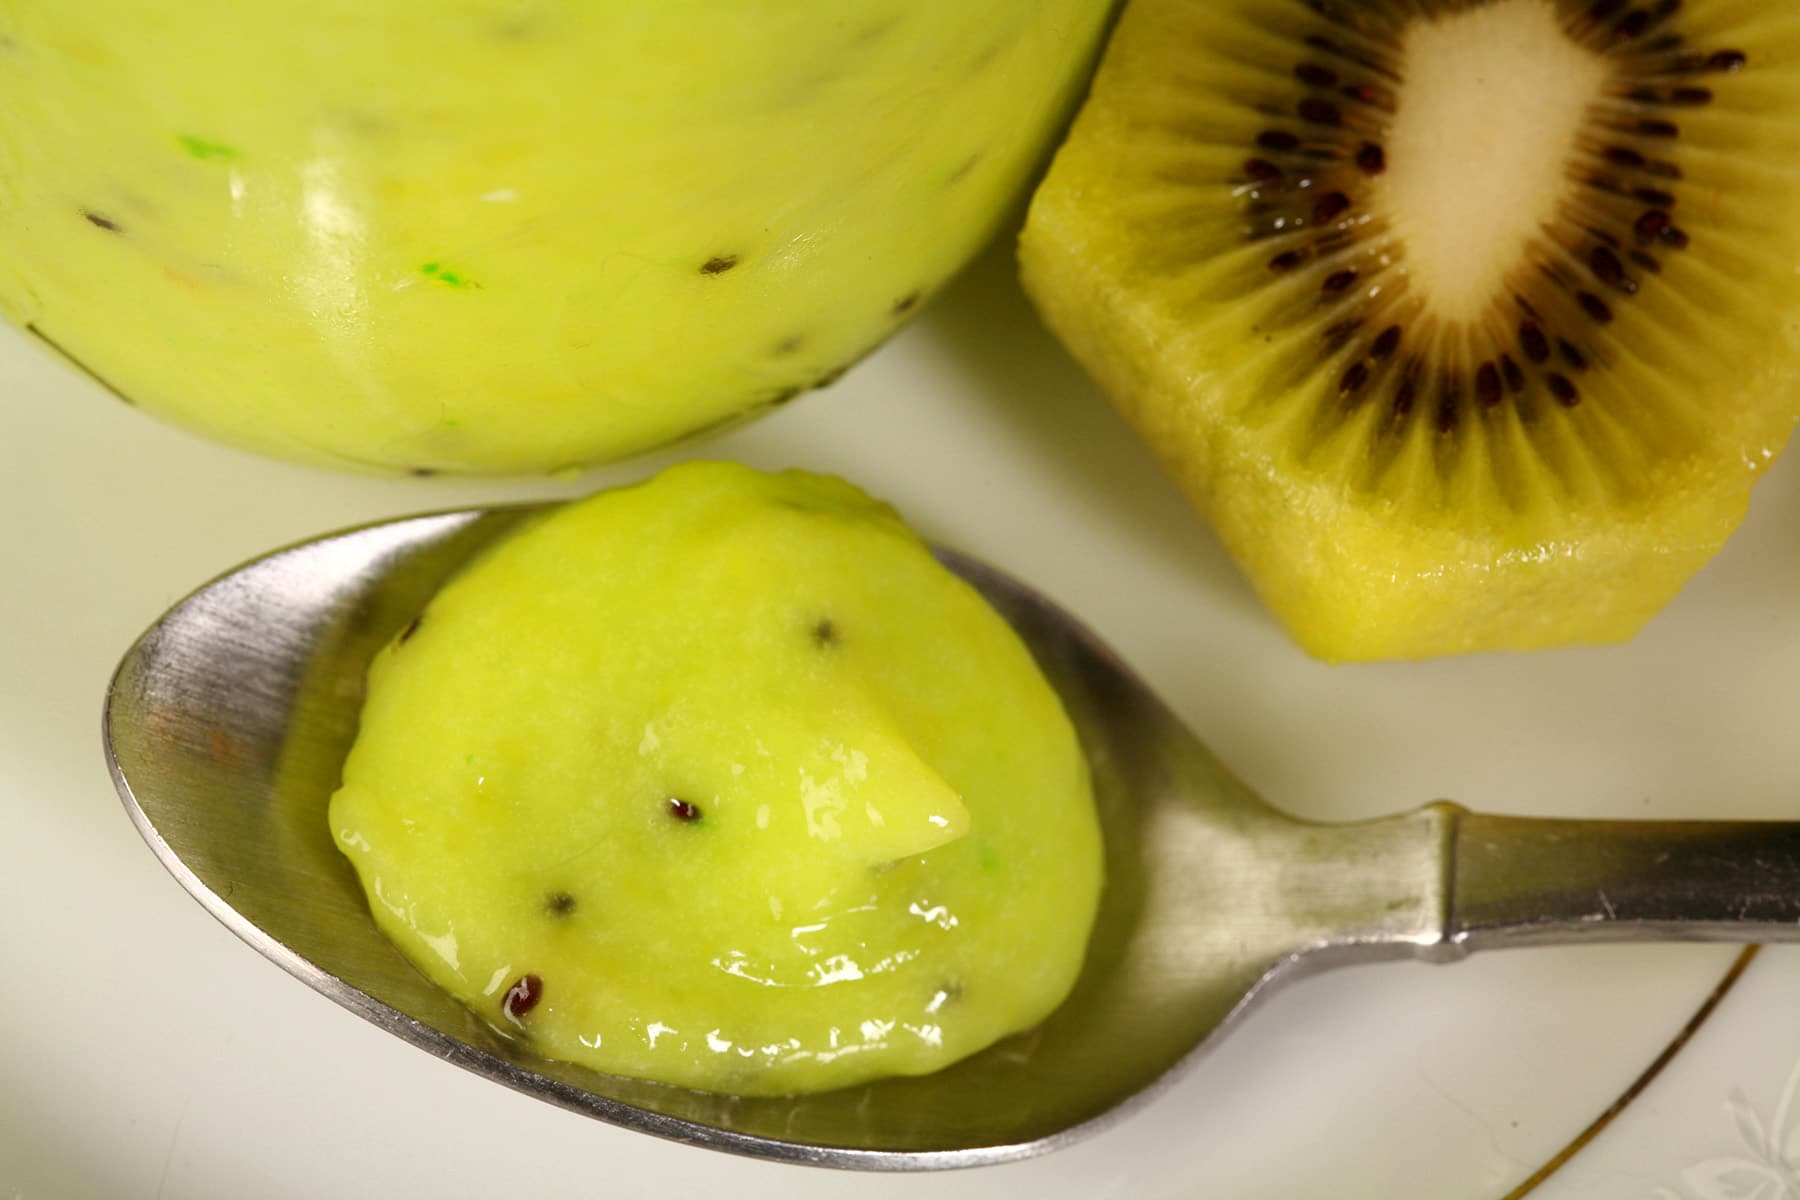 A jar of kiwifruit curd on a plate. There is a spoon of curd next to the jar.